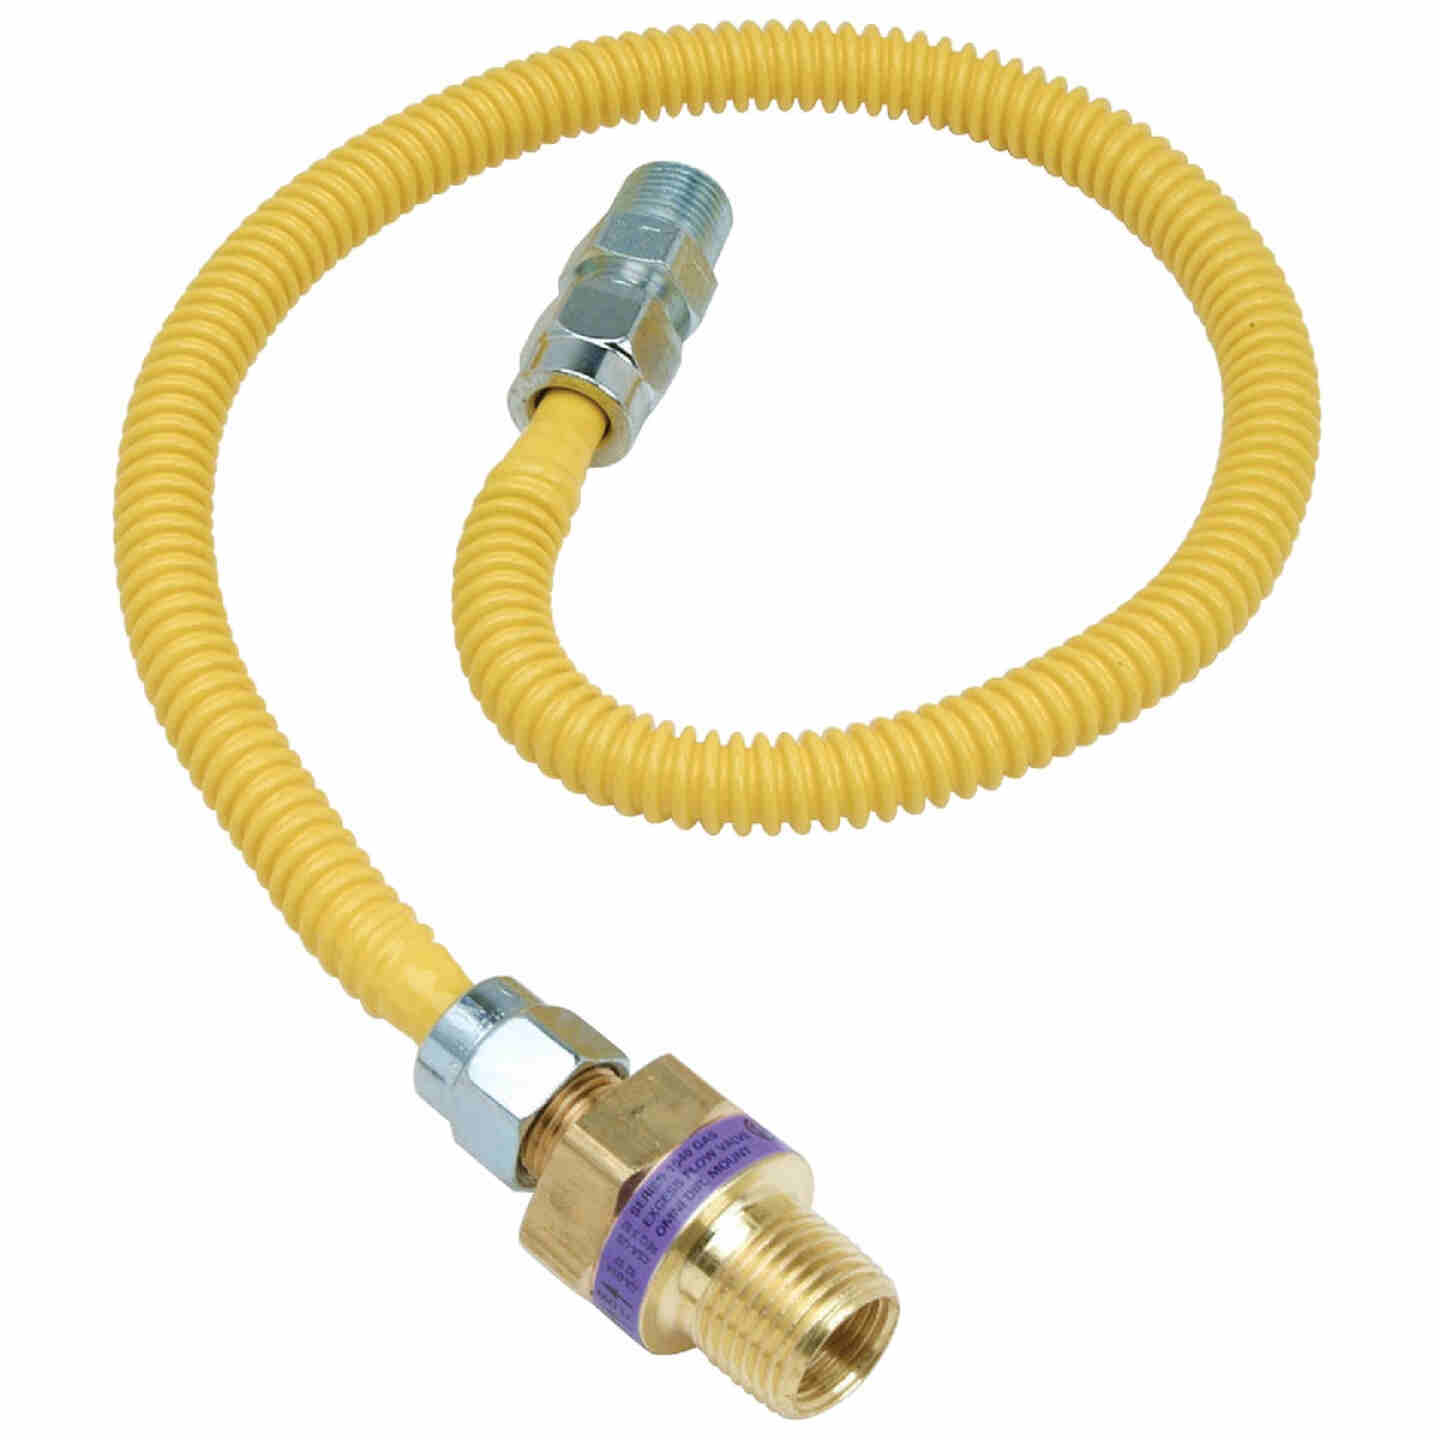 Dormont 3/8 In. OD x 36 In. Coated Stainless Steel Gas Connector, 3/8 In. MIP (Tapped 1/4 In. FIP) x 1/2 In. MIP SmartSense Image 1